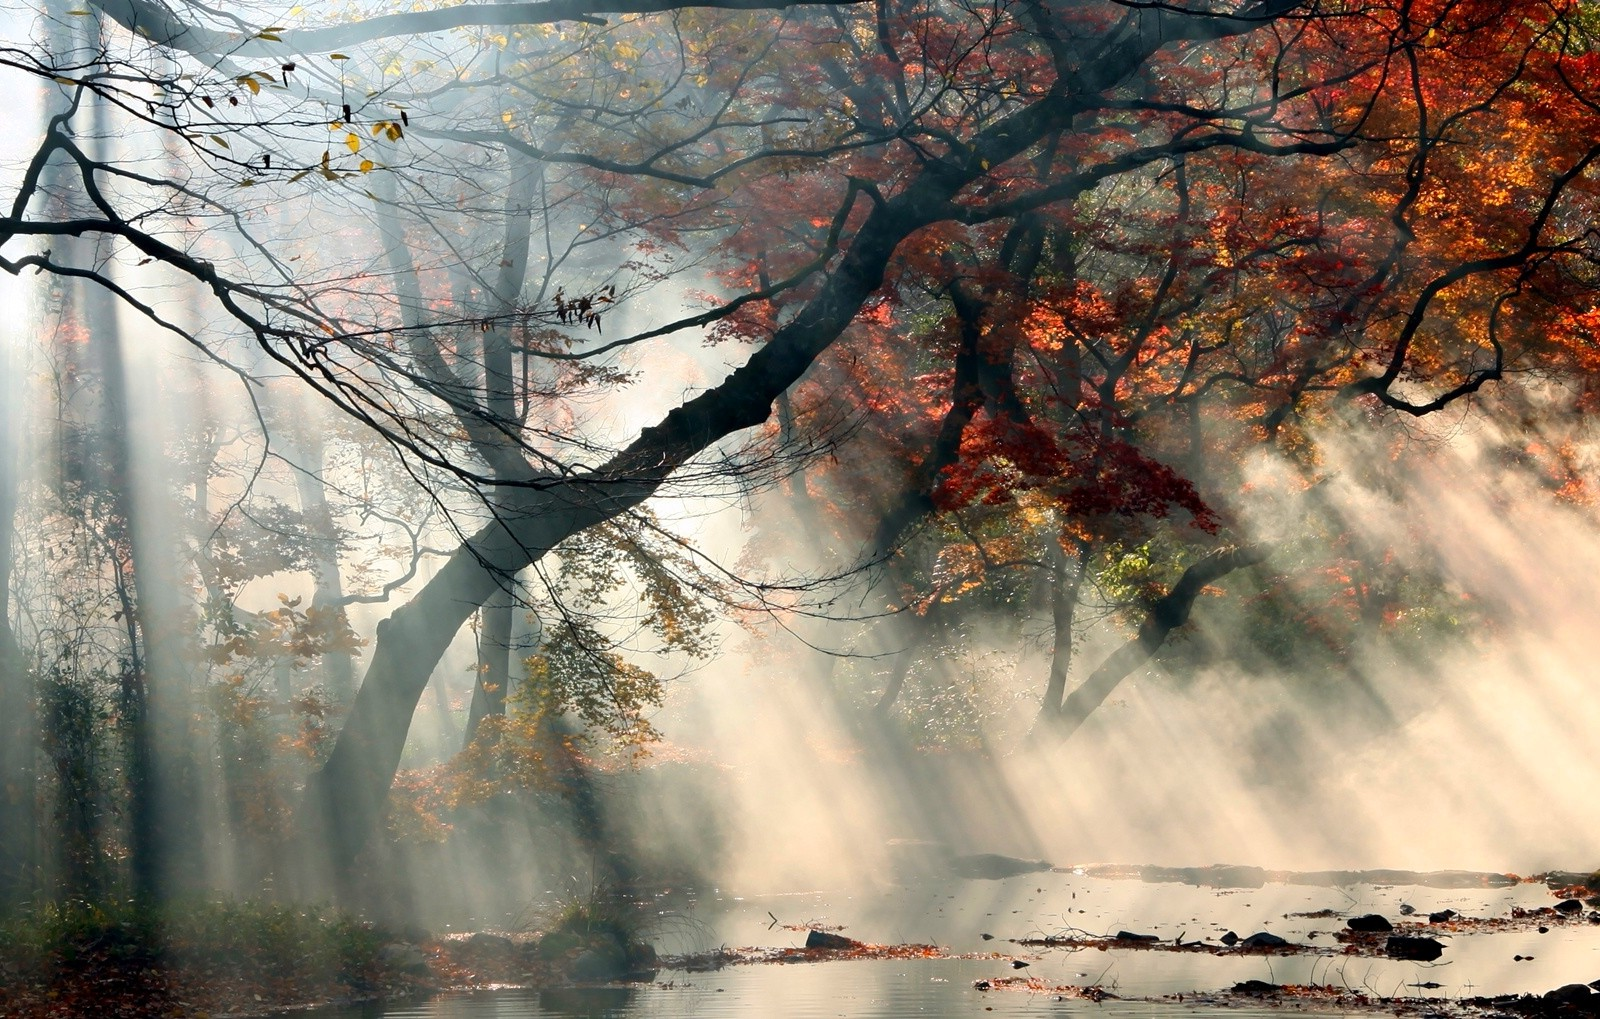 Vintage Fall Wallpaper Nature Landscape Sunrise Mist Sun Rays Fall Trees